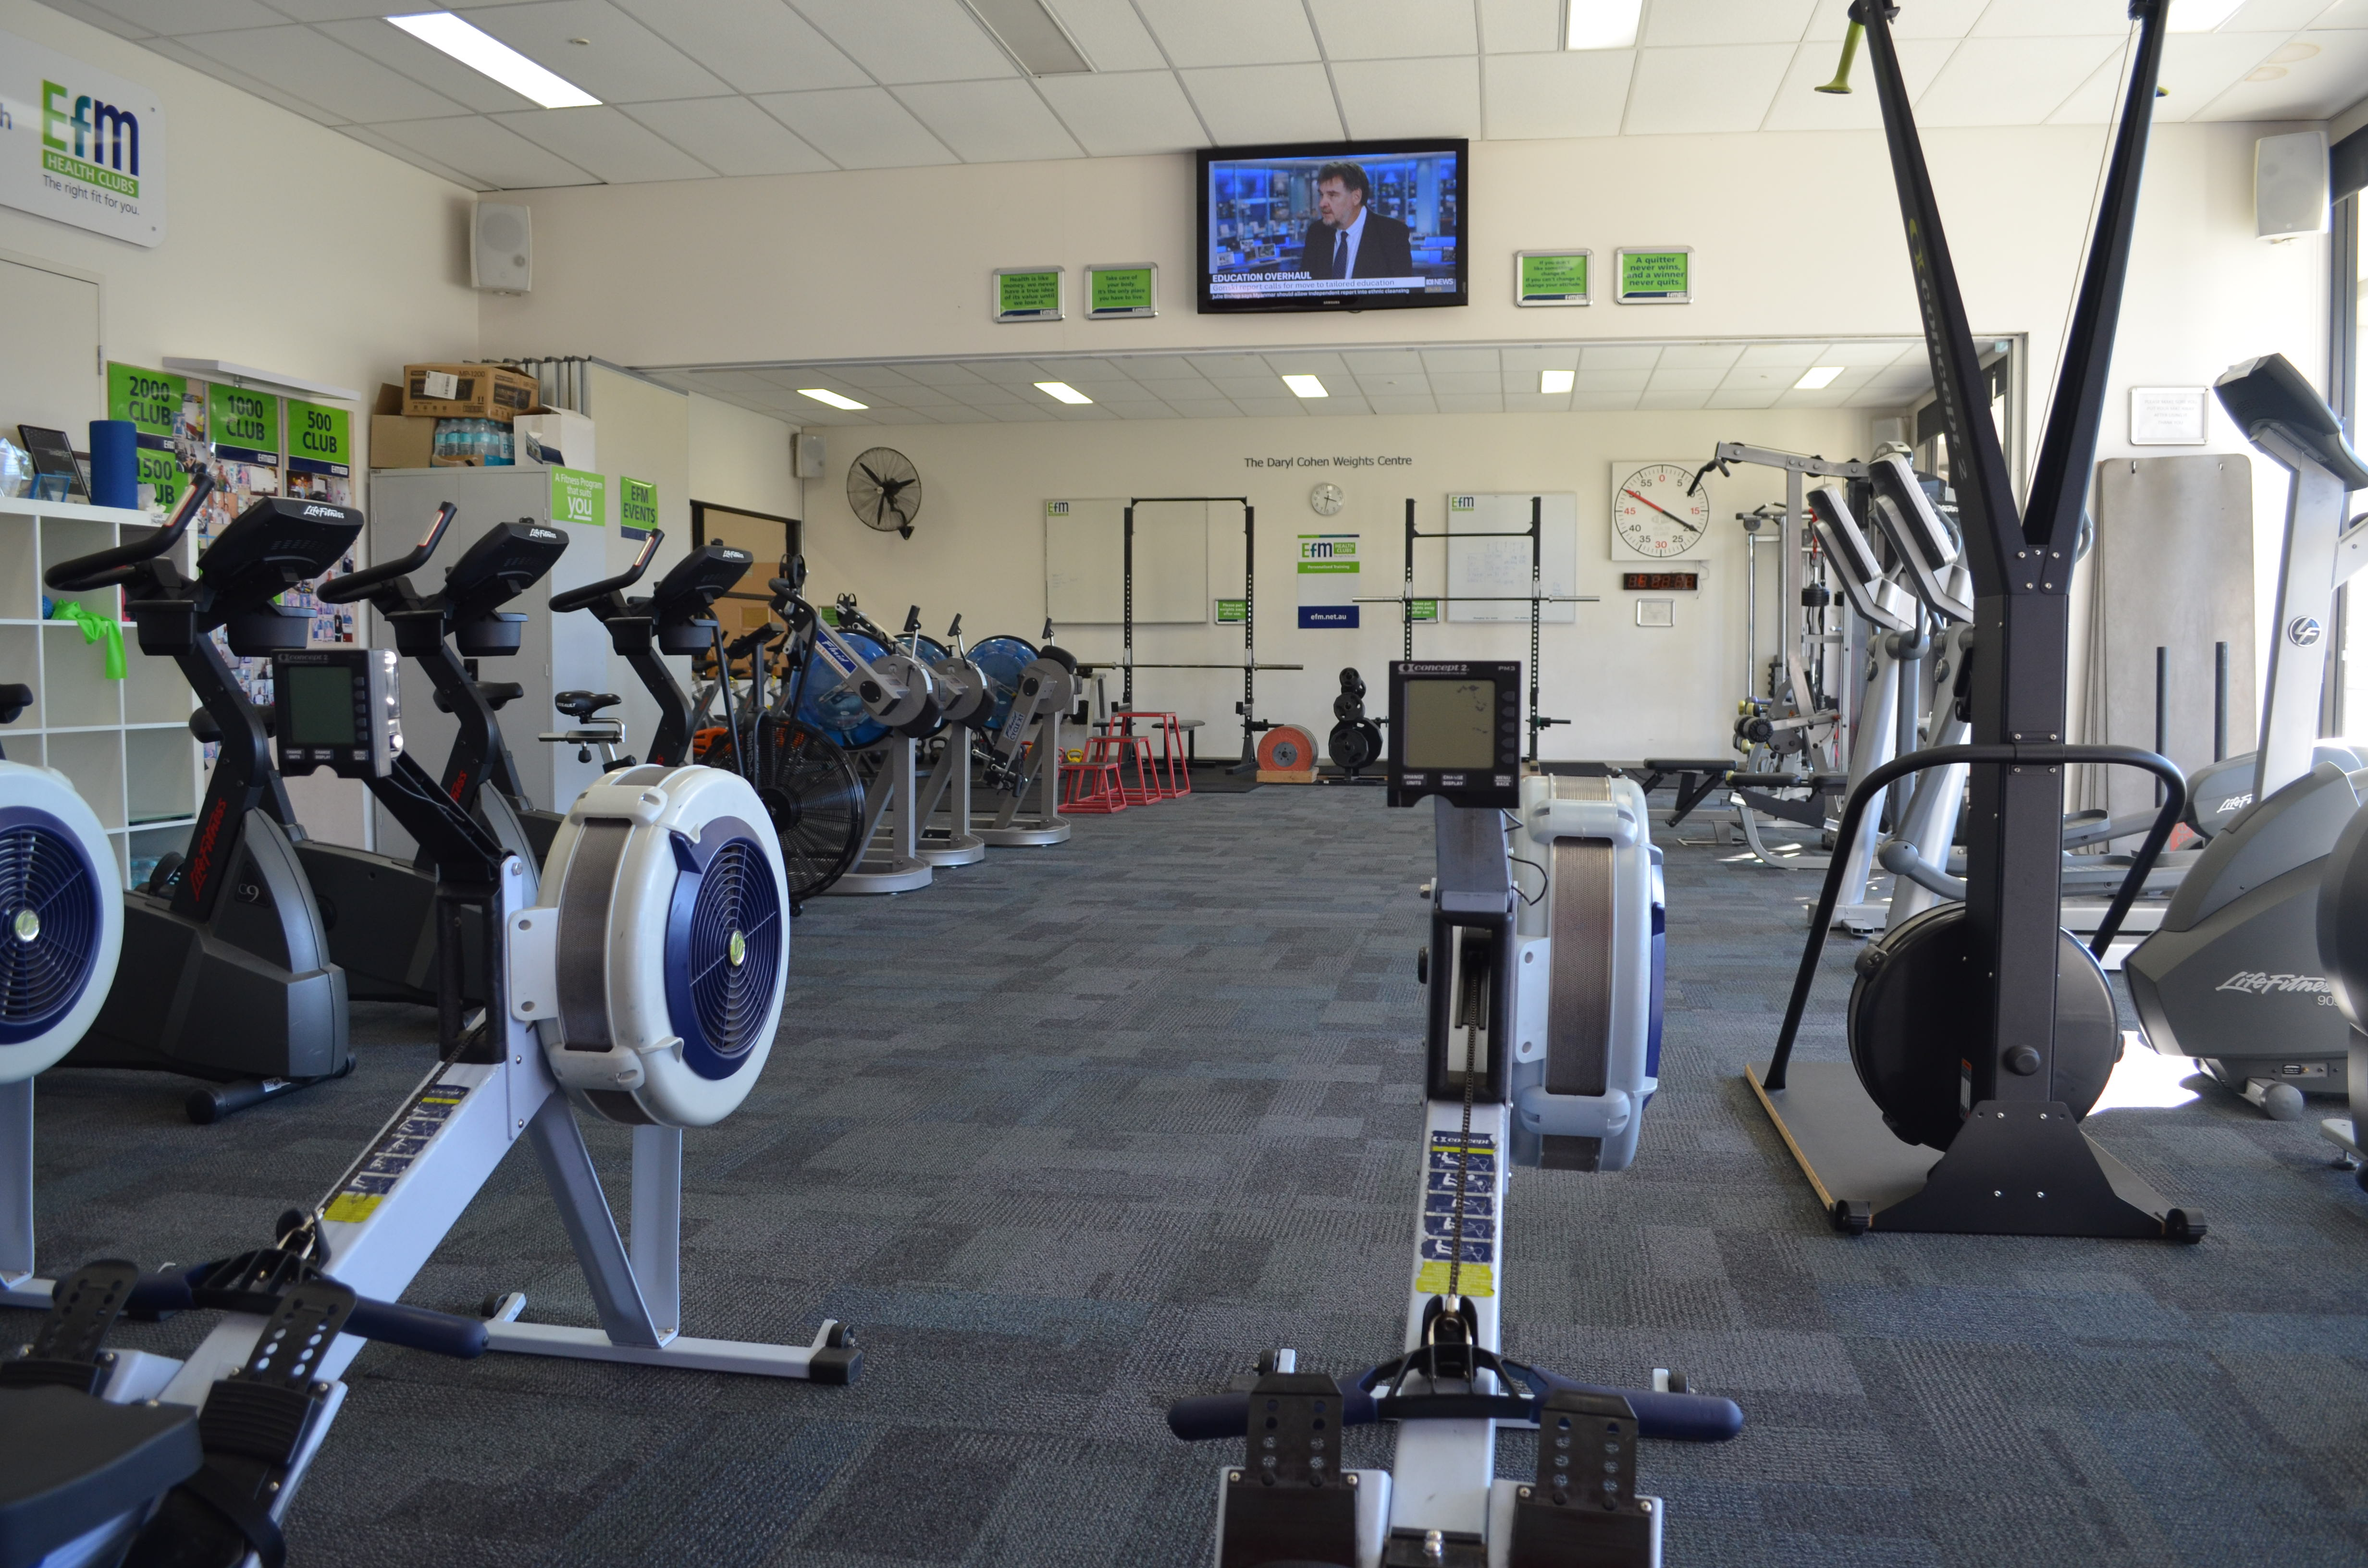 efm-health-club-gym-franchise-for-sale-fitness-coaching-personal-training-2